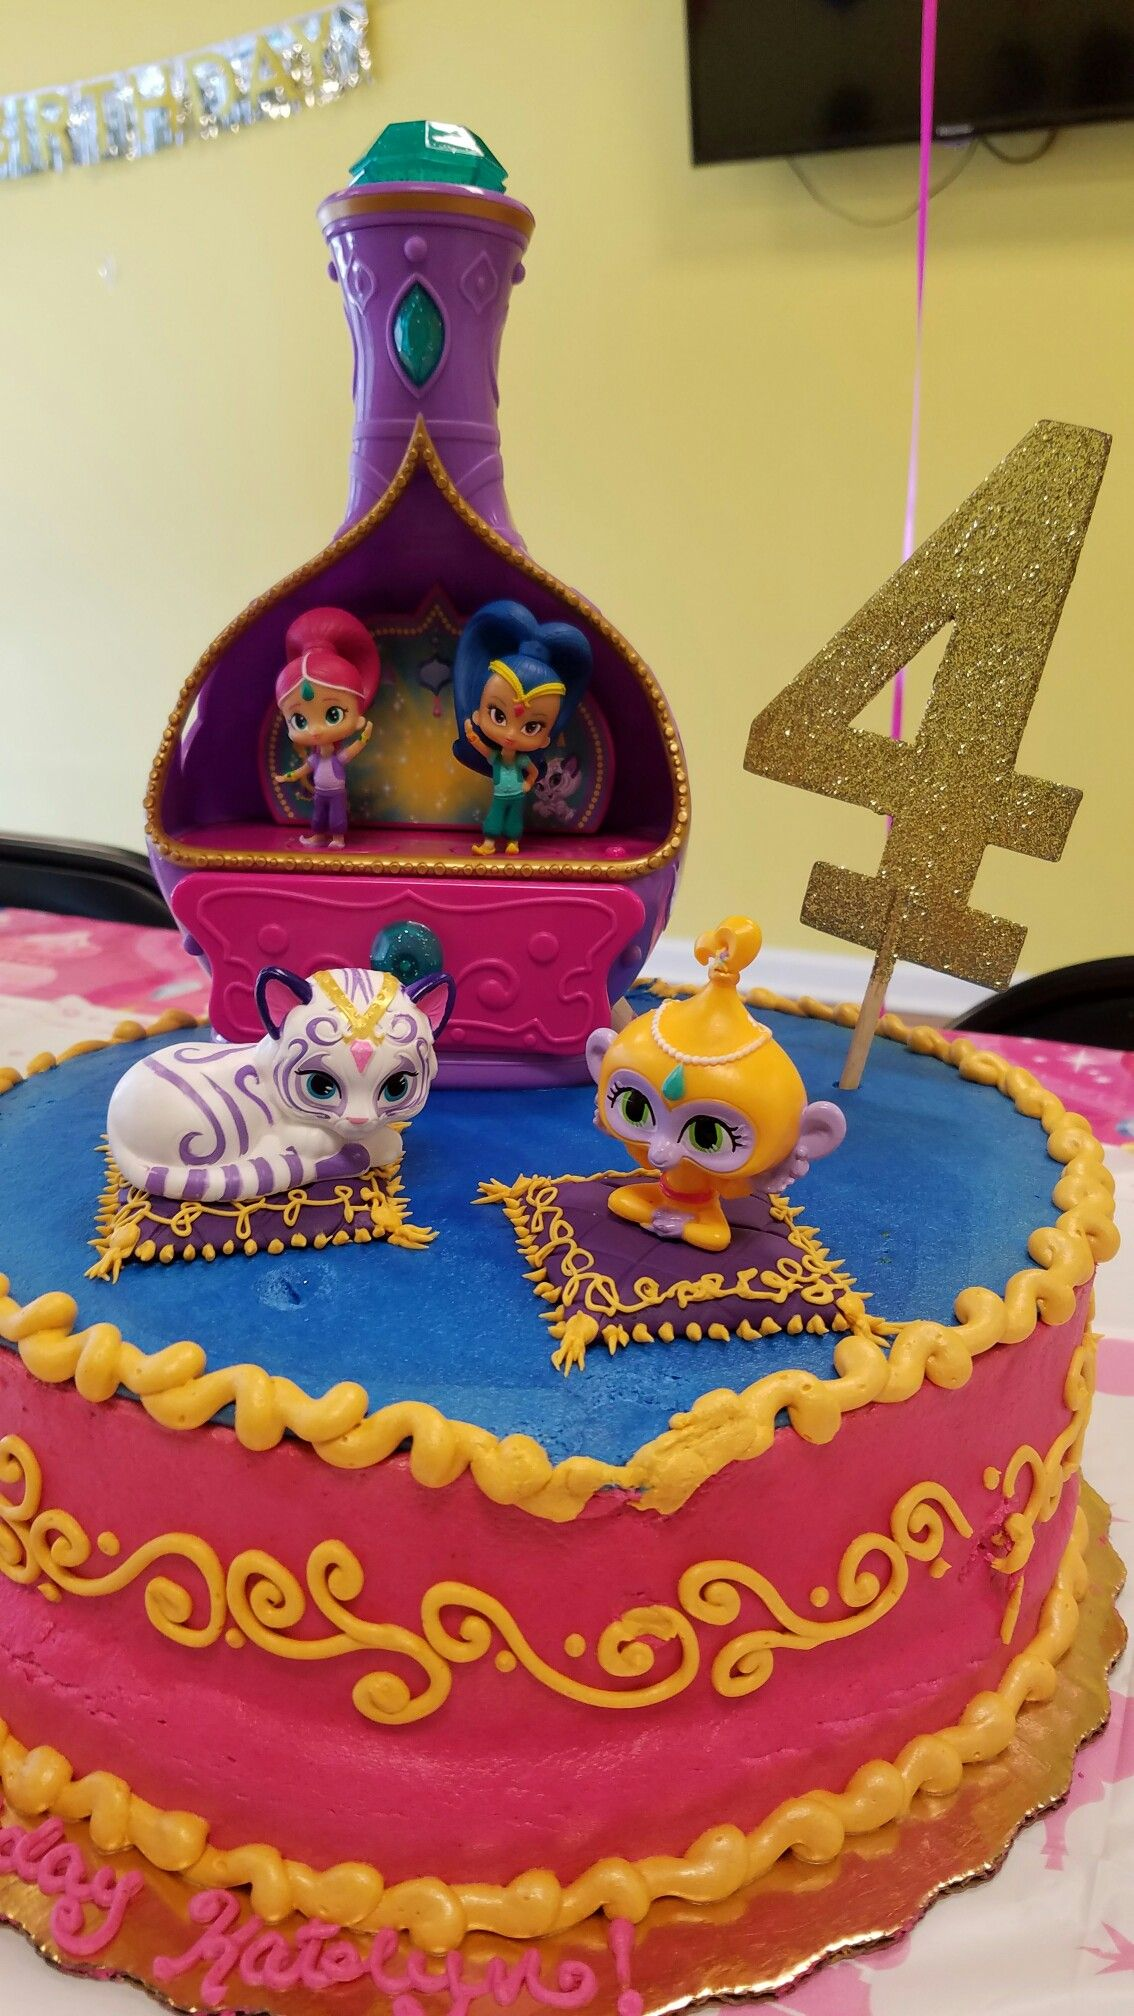 Cake Made By Publix All Toppers Purchased From Amazon Shimmer And Shine Birthday